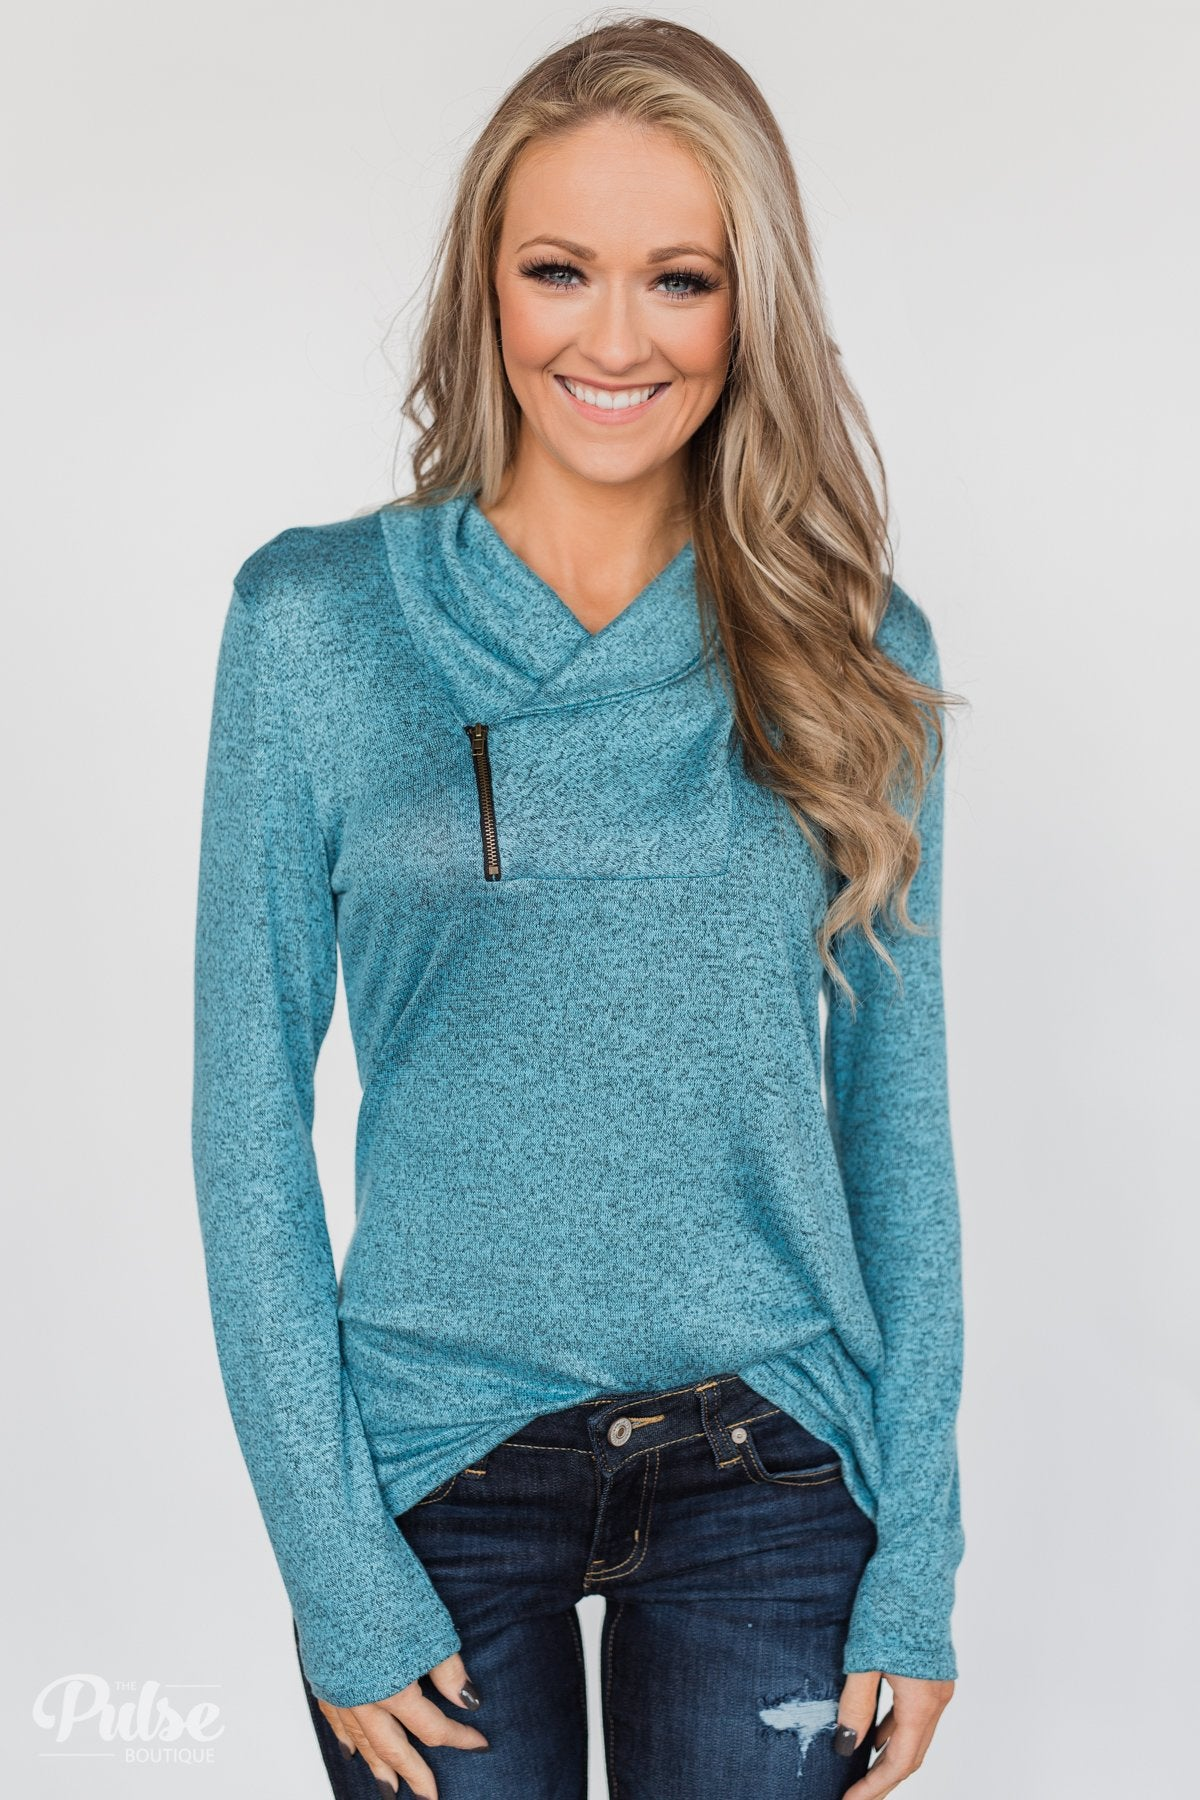 All This Time Zipper Pullover Top- Blue